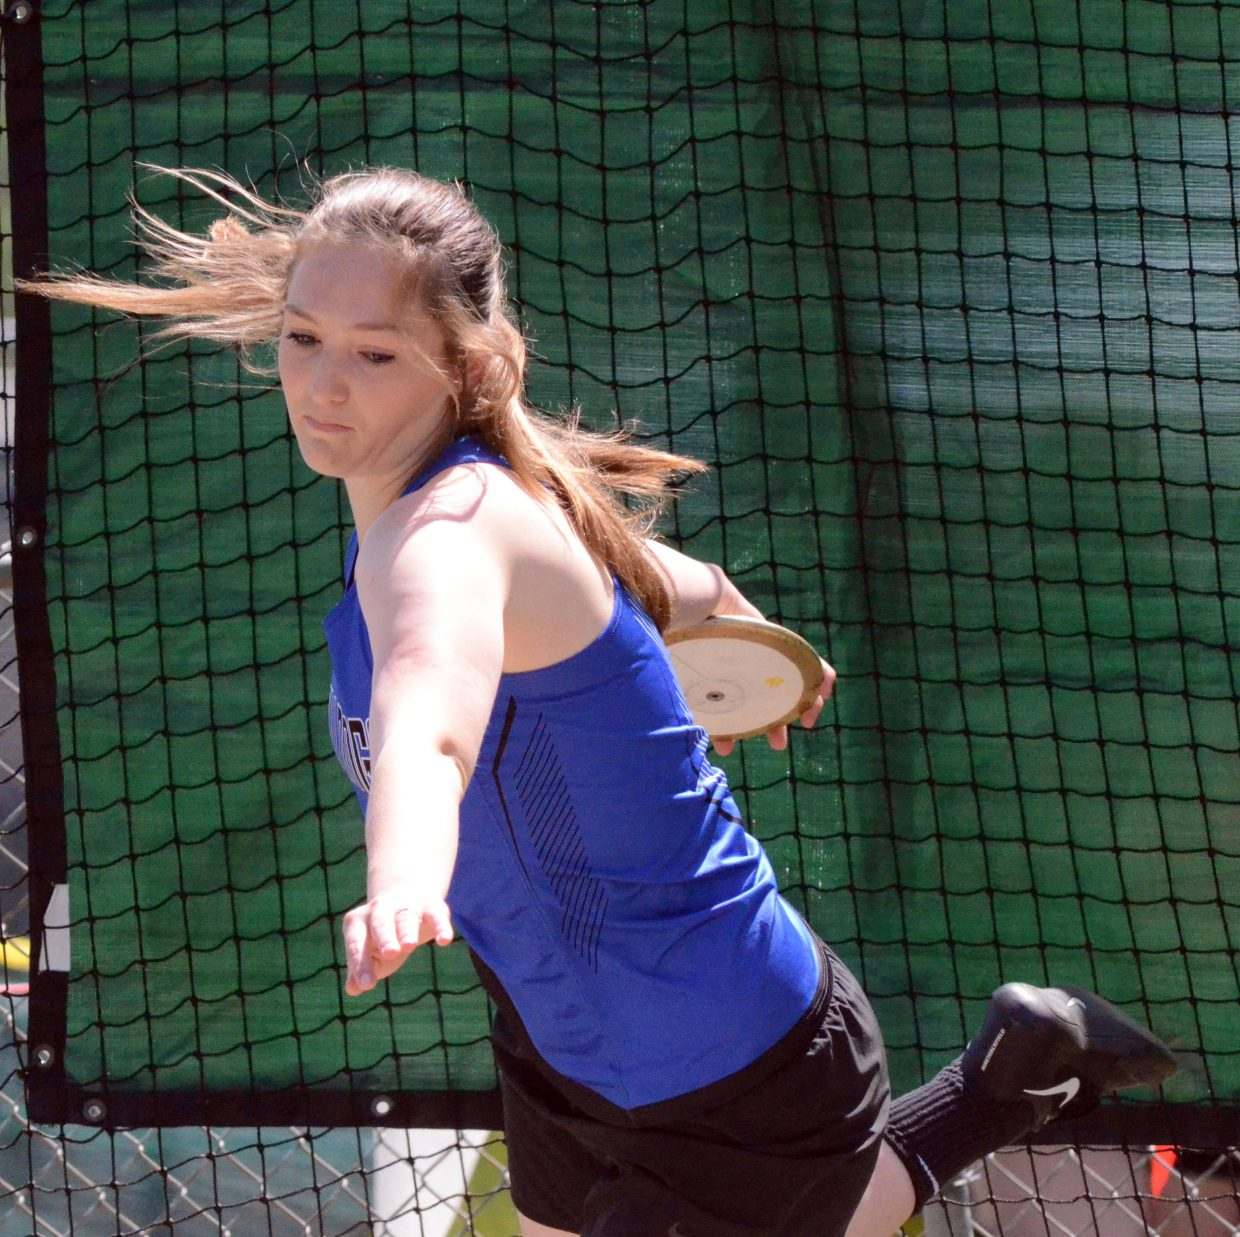 Moffat County High School's Tiffany Hildebrandt starts her spin in the discus throw Friday at the CHSAA State Championships.